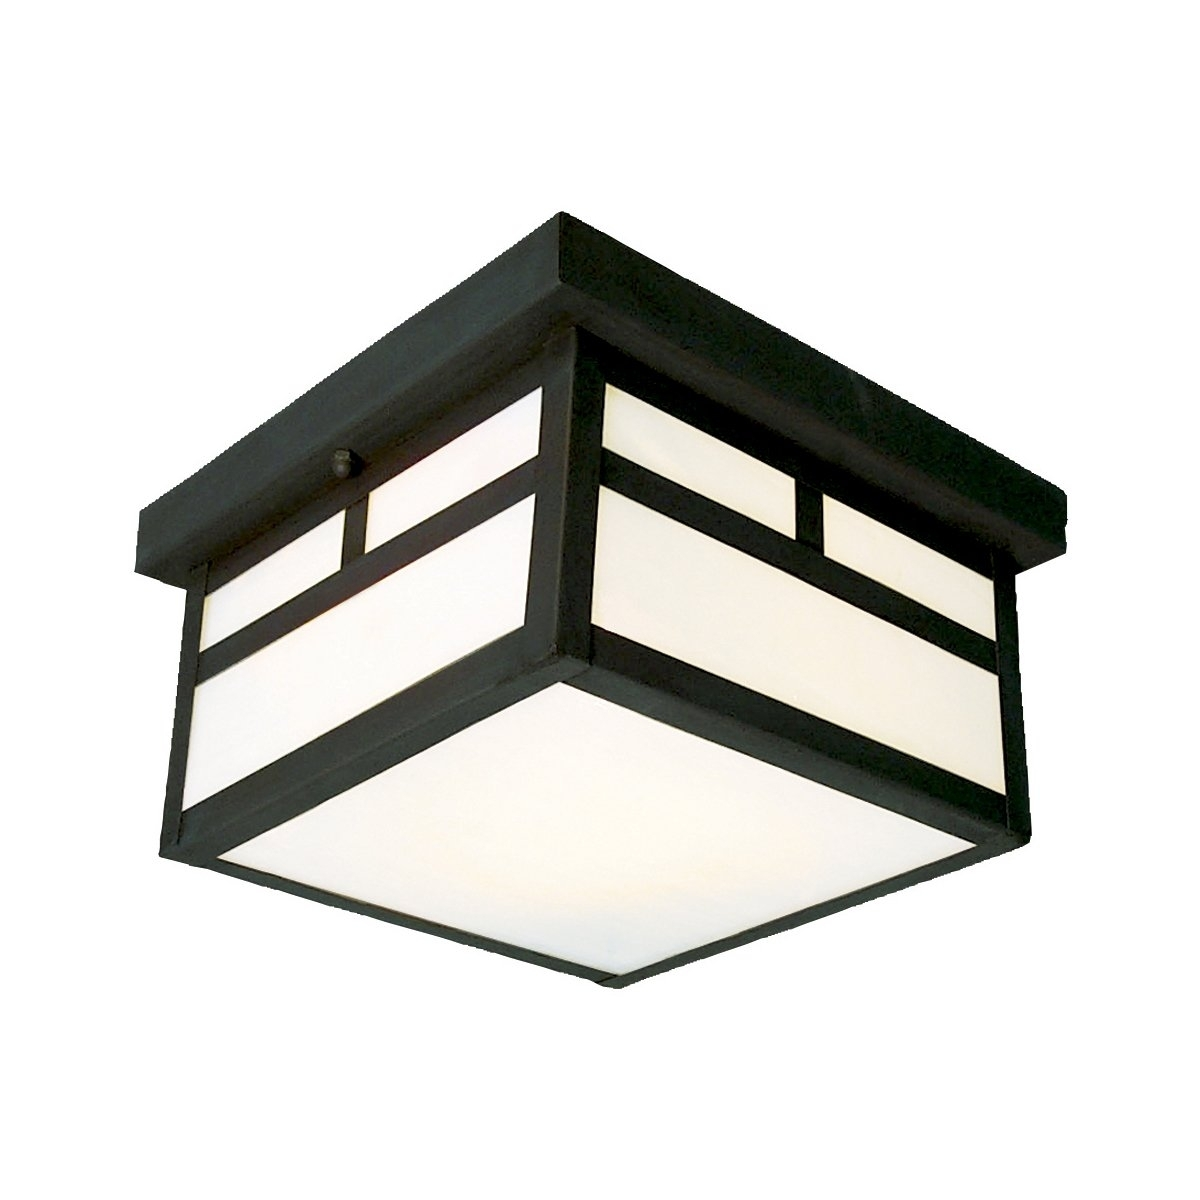 Outdoor Close To Ceiling Lights | Exterior Lights | Lowe's Canada With Regard To Outdoor Close To Ceiling Lights (#10 of 15)